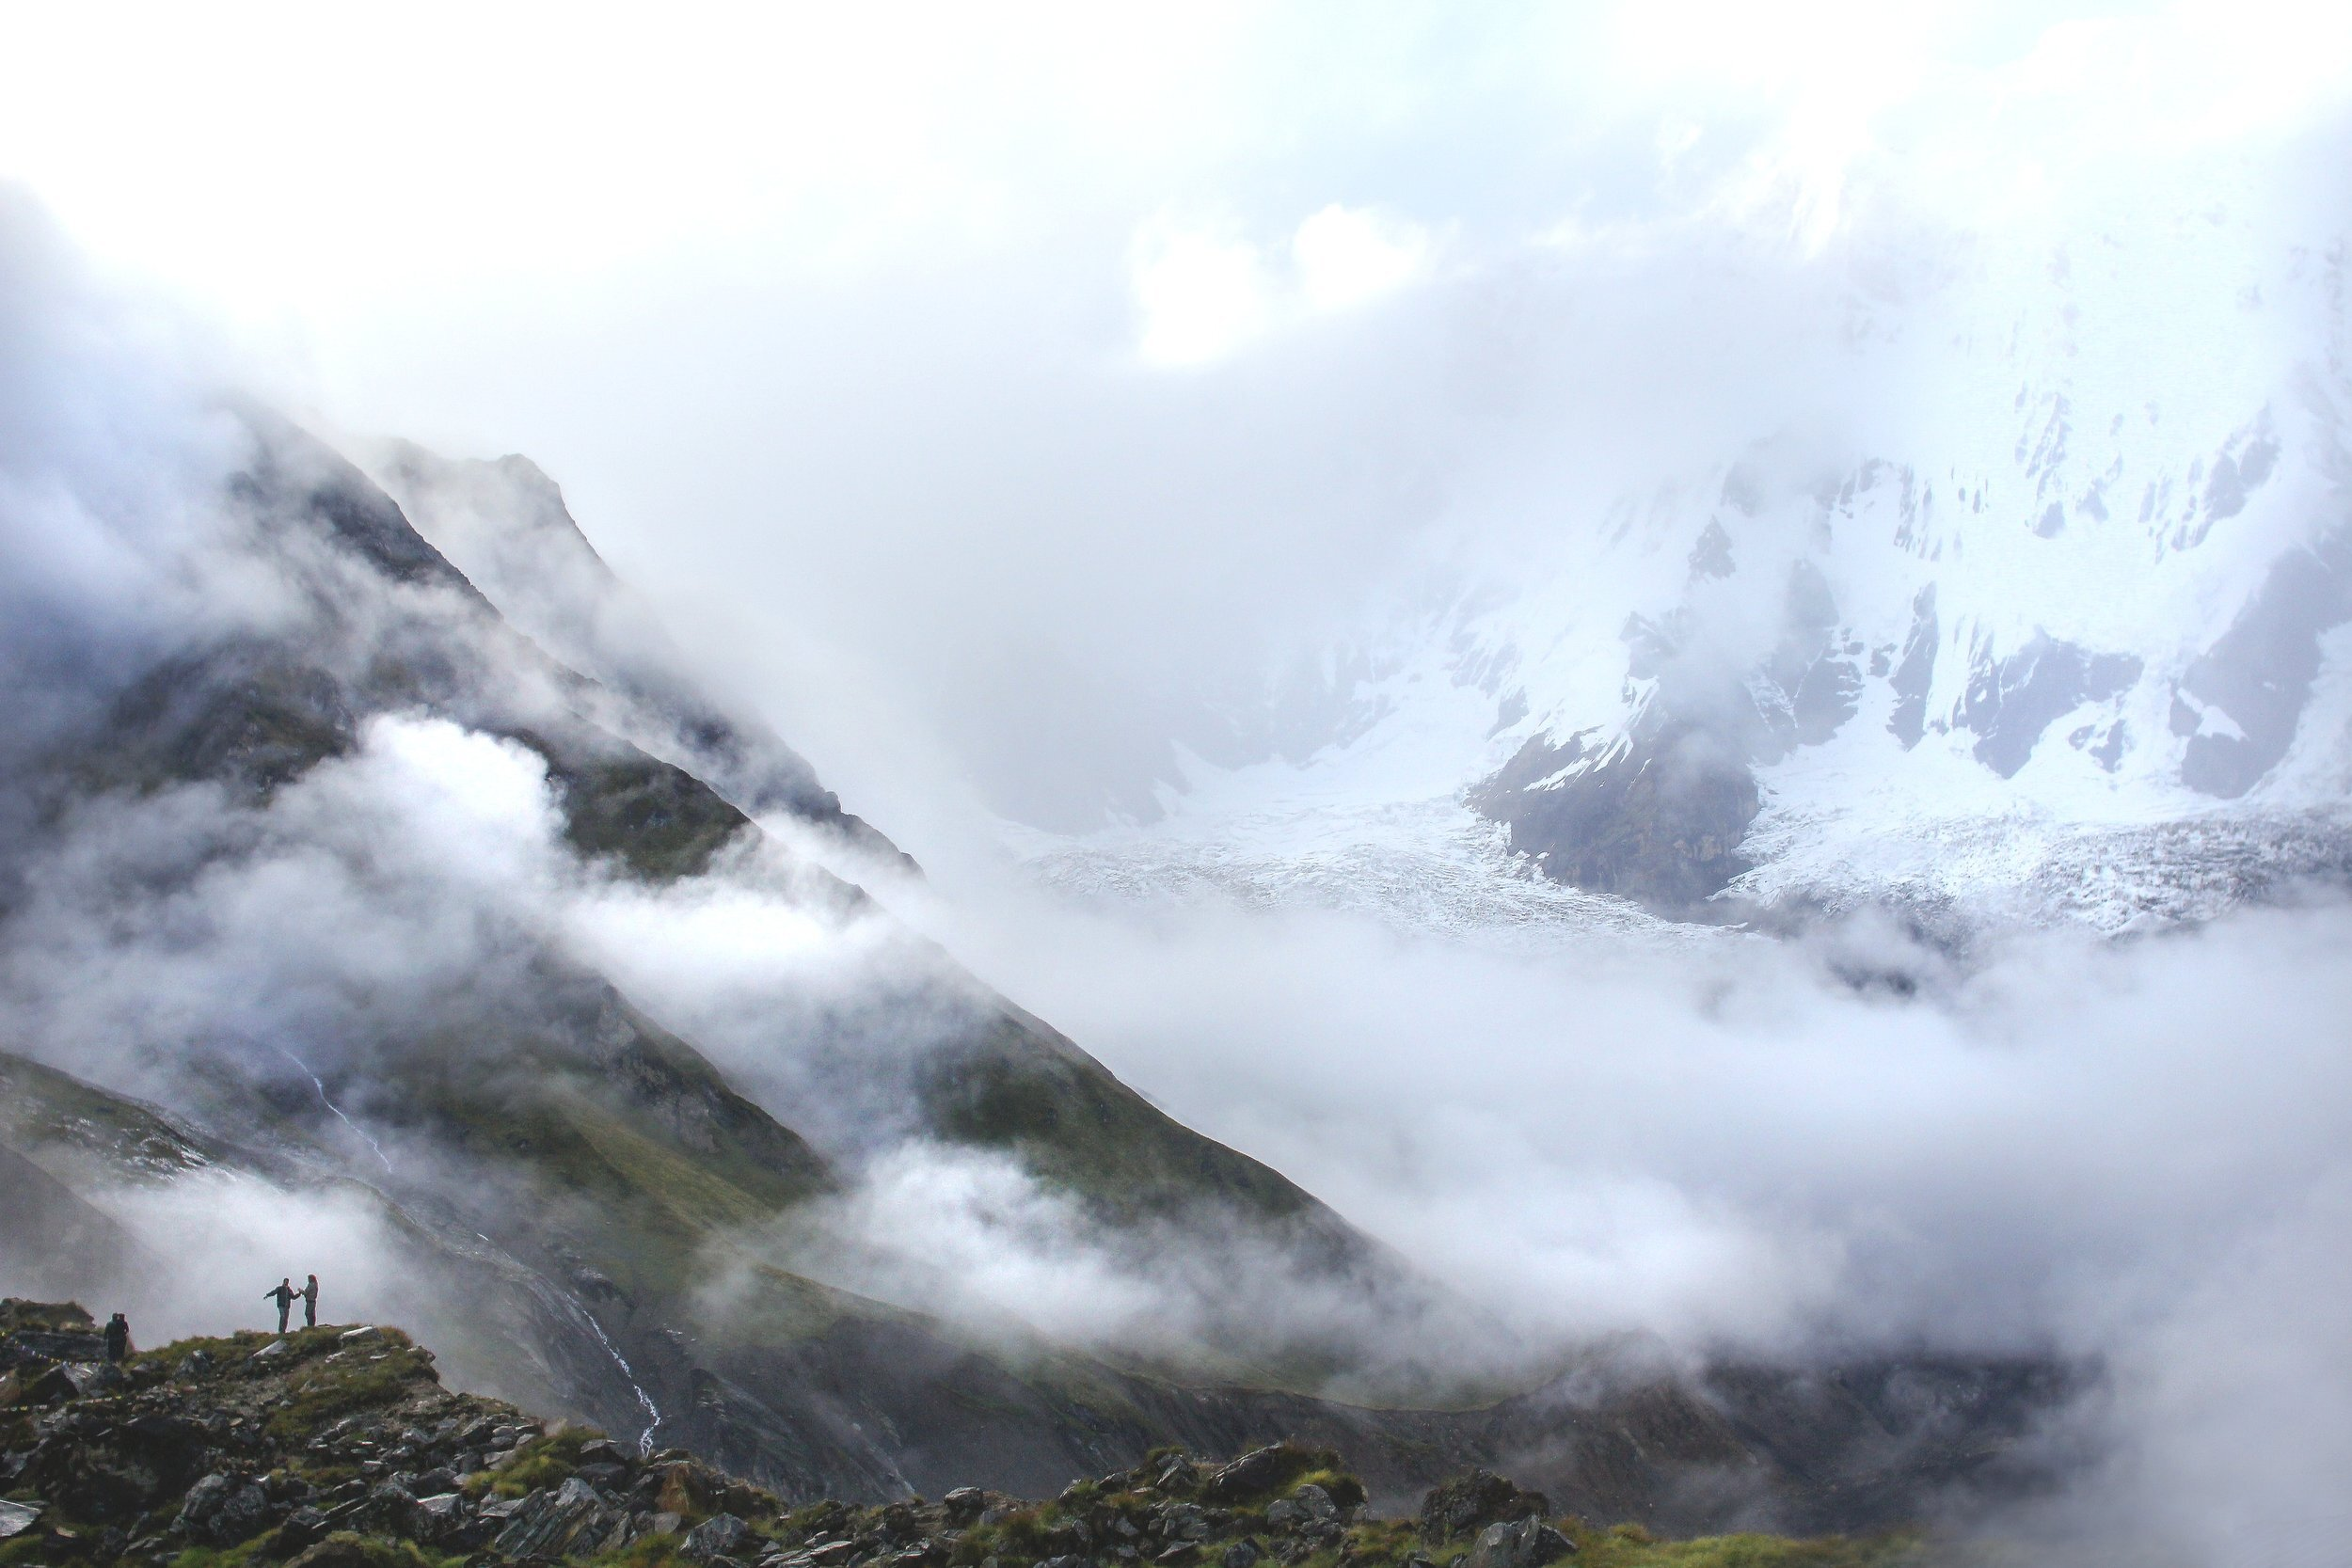 HIMALAYAN ESCAPE - INDIA - MARCH 2020